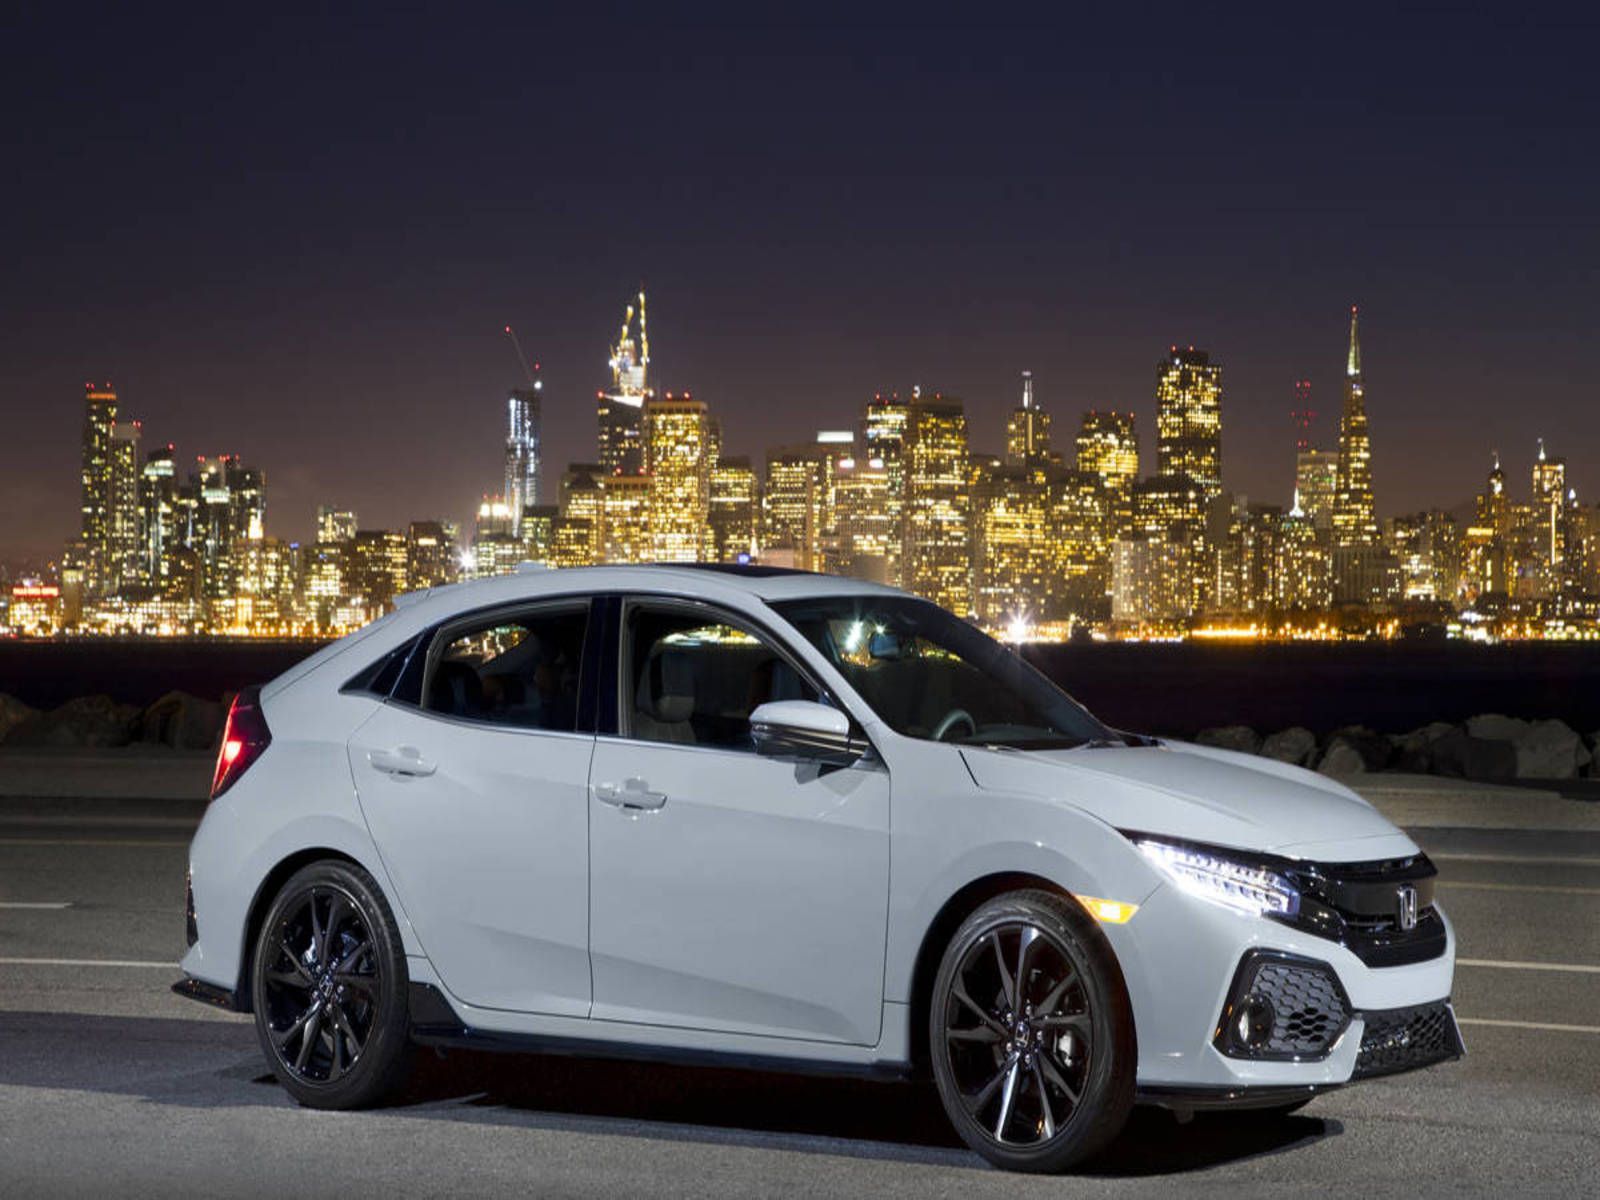 2017 Honda Civic Si Hatchback Review Honda civic